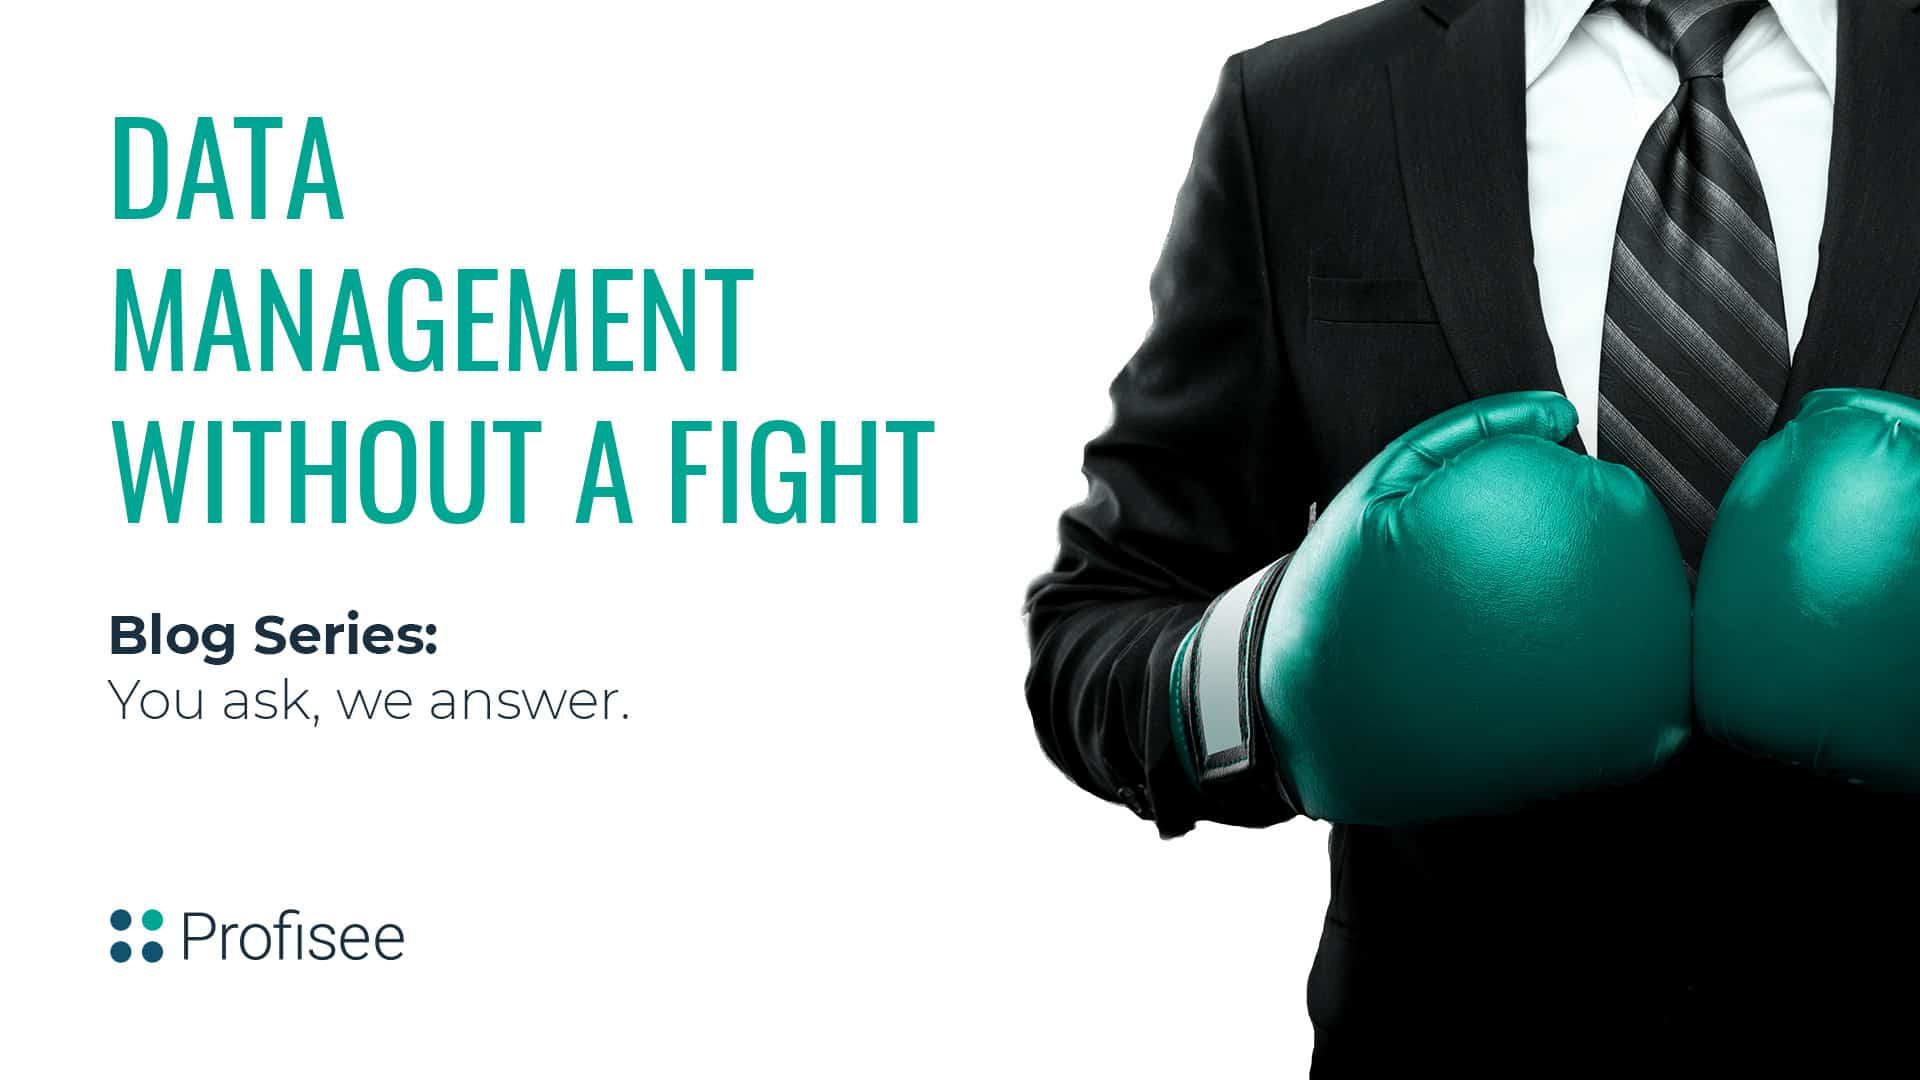 How To Get The Business to Embrace Data Management Without a Fight